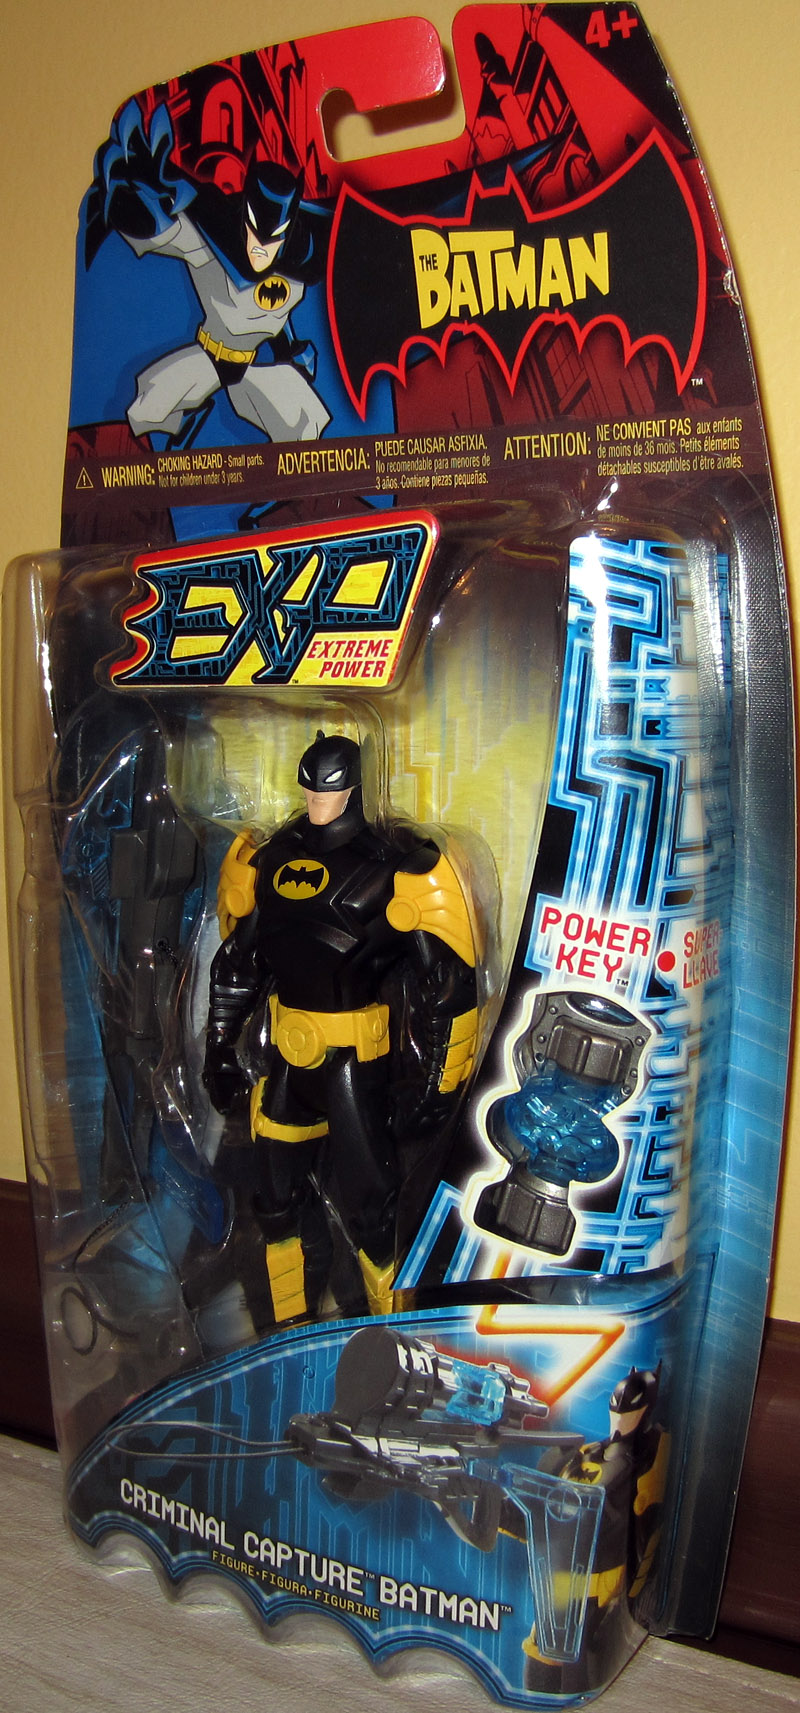 Criminal Capture Batman (EXP)